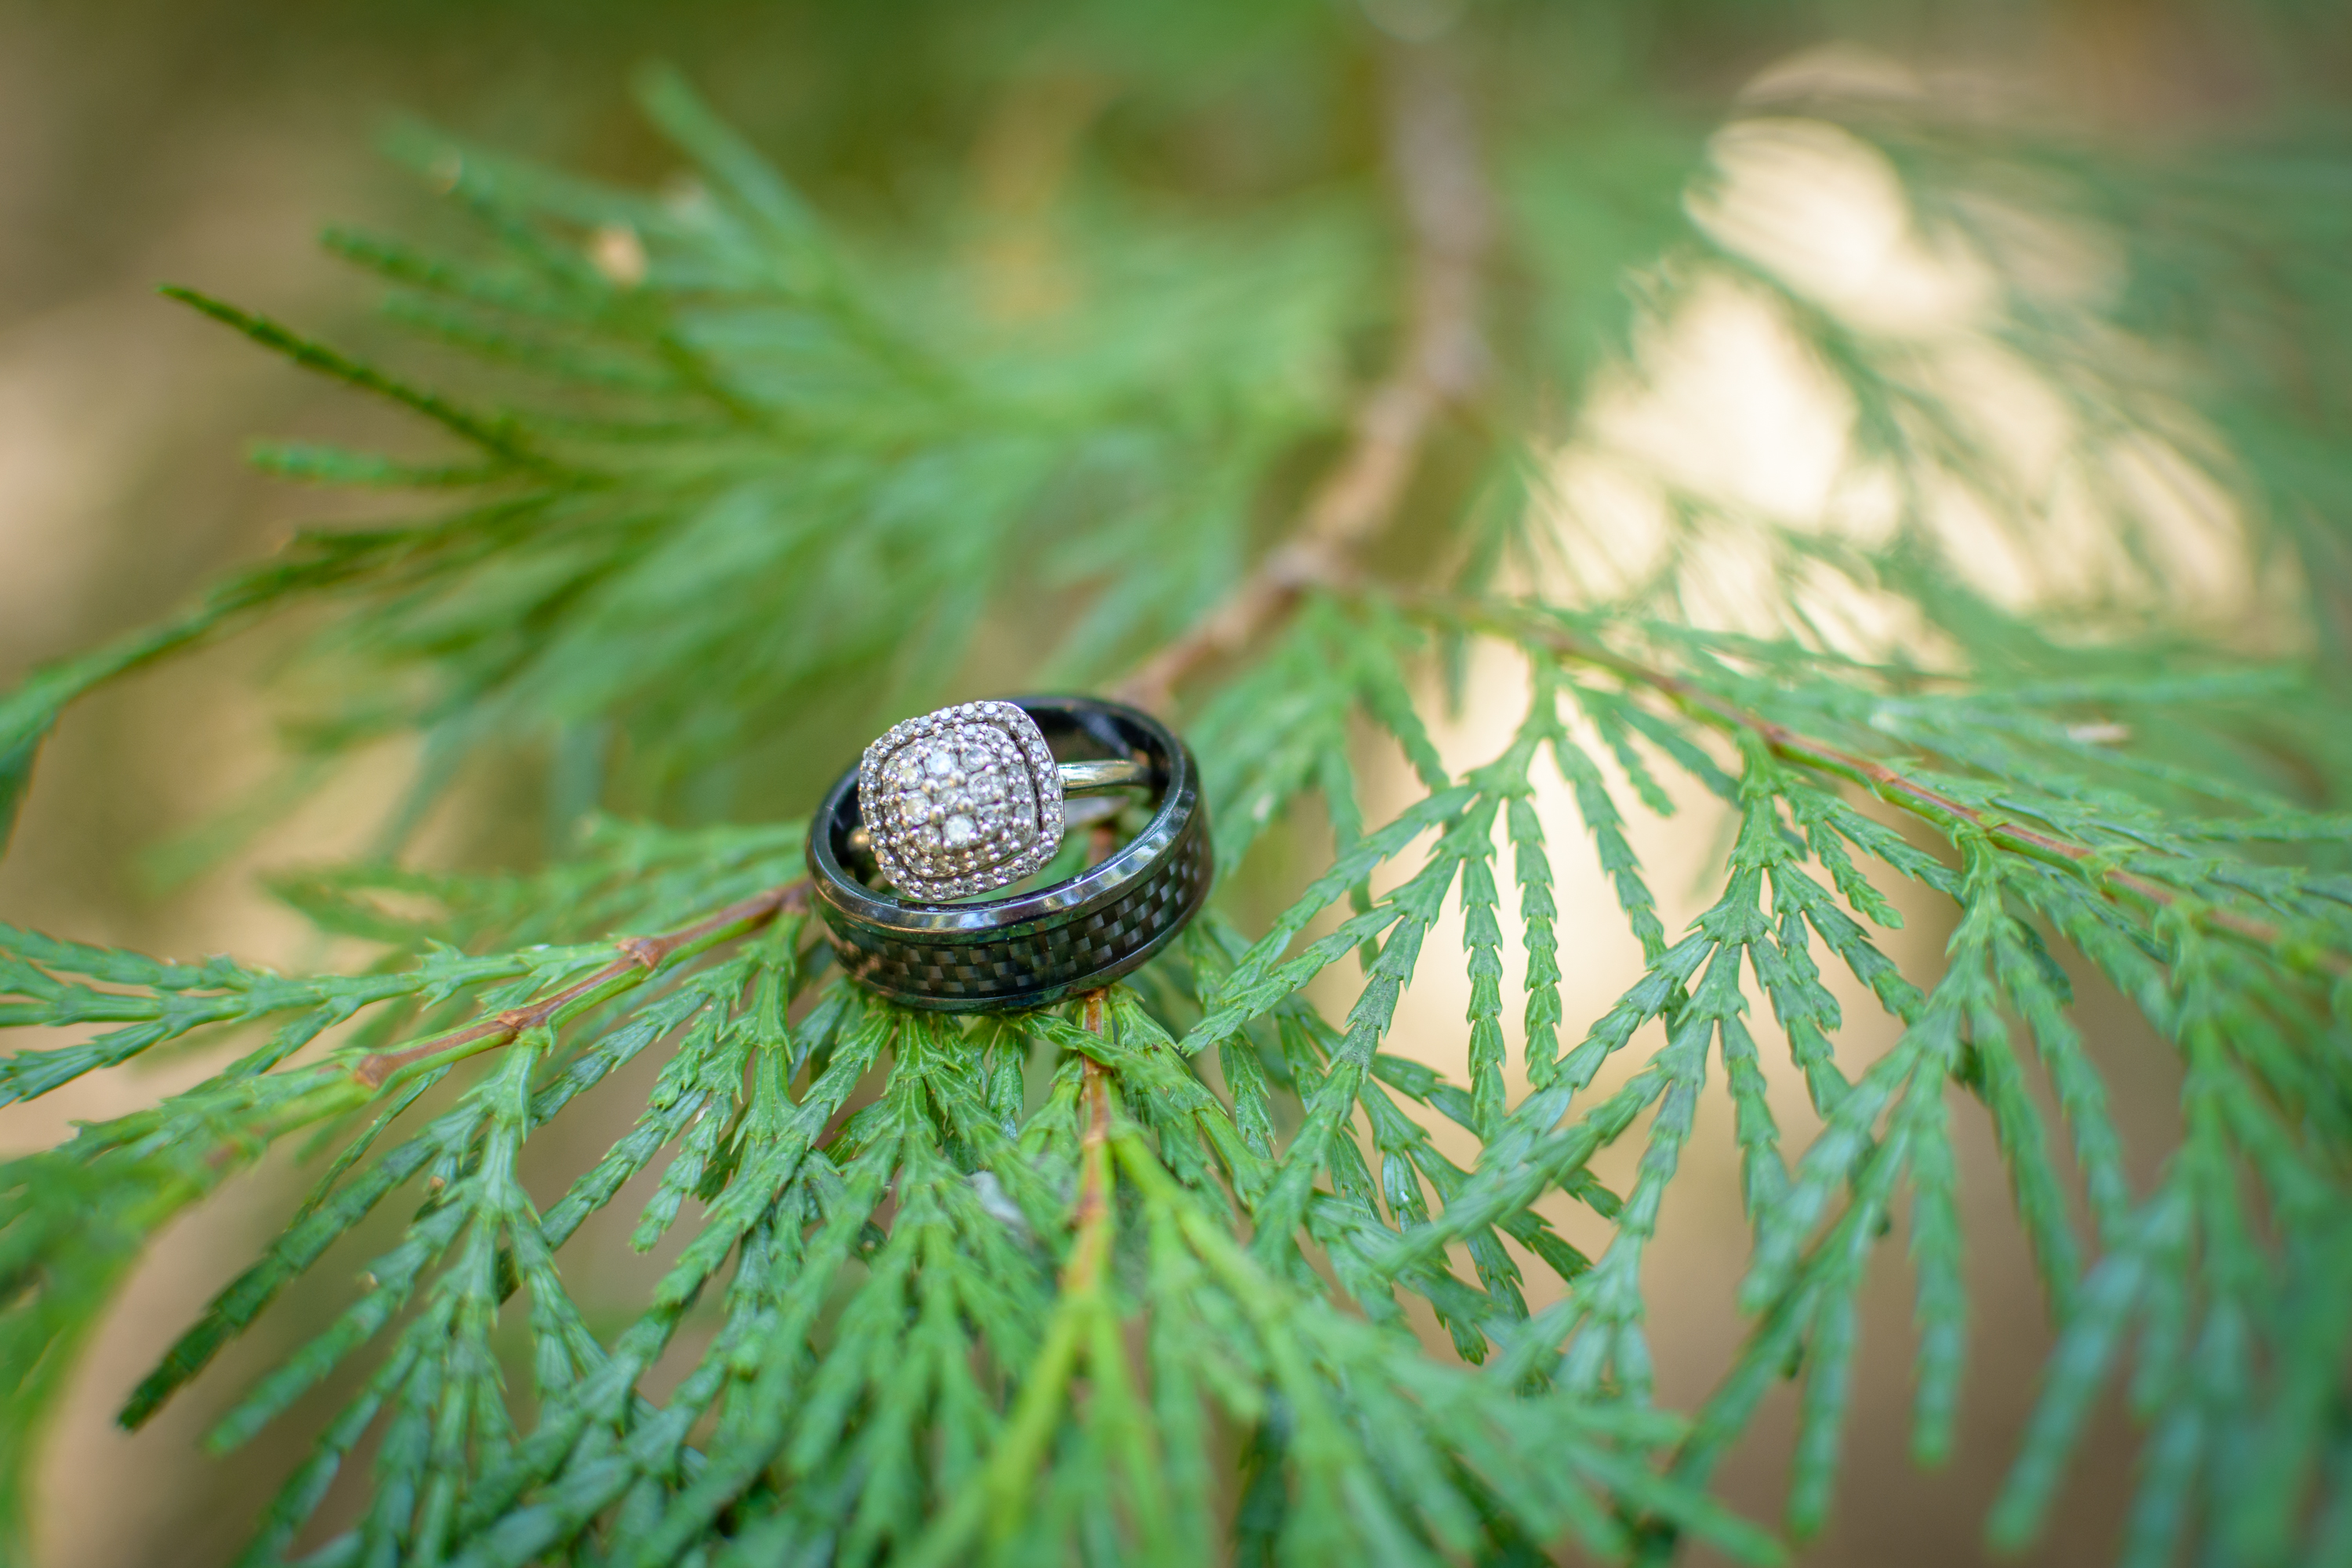 The elegant wedding rings sit atop the branch of a tree.